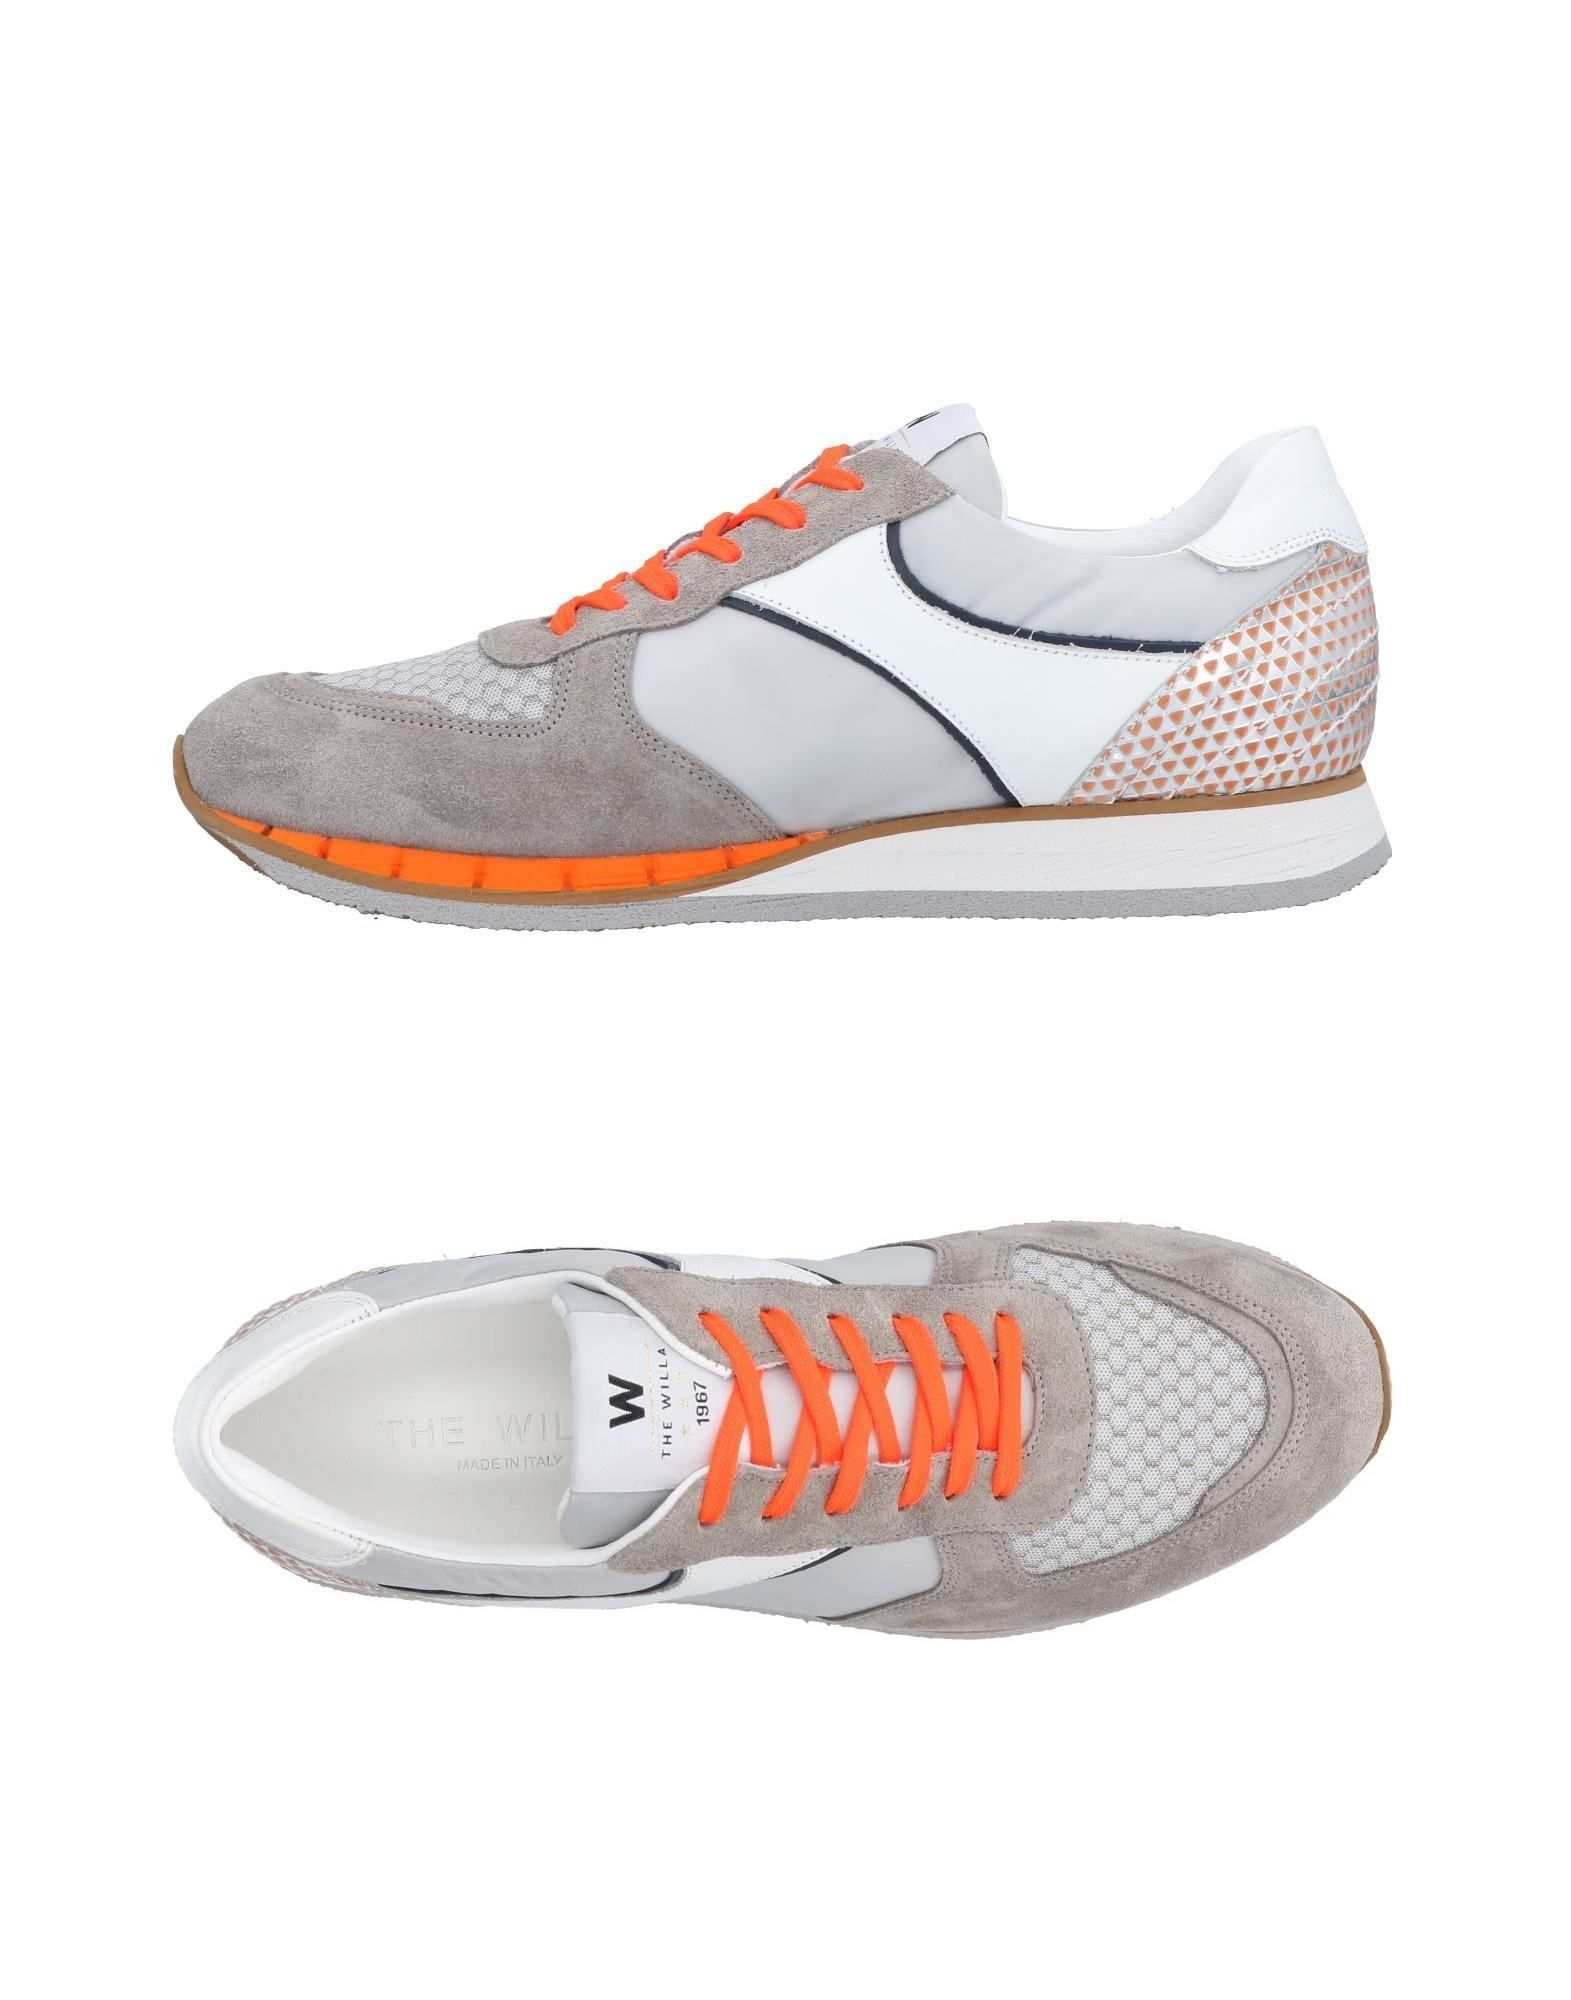 The Sneakers Willa Sneakers The Herren  11483671QI 979dfc